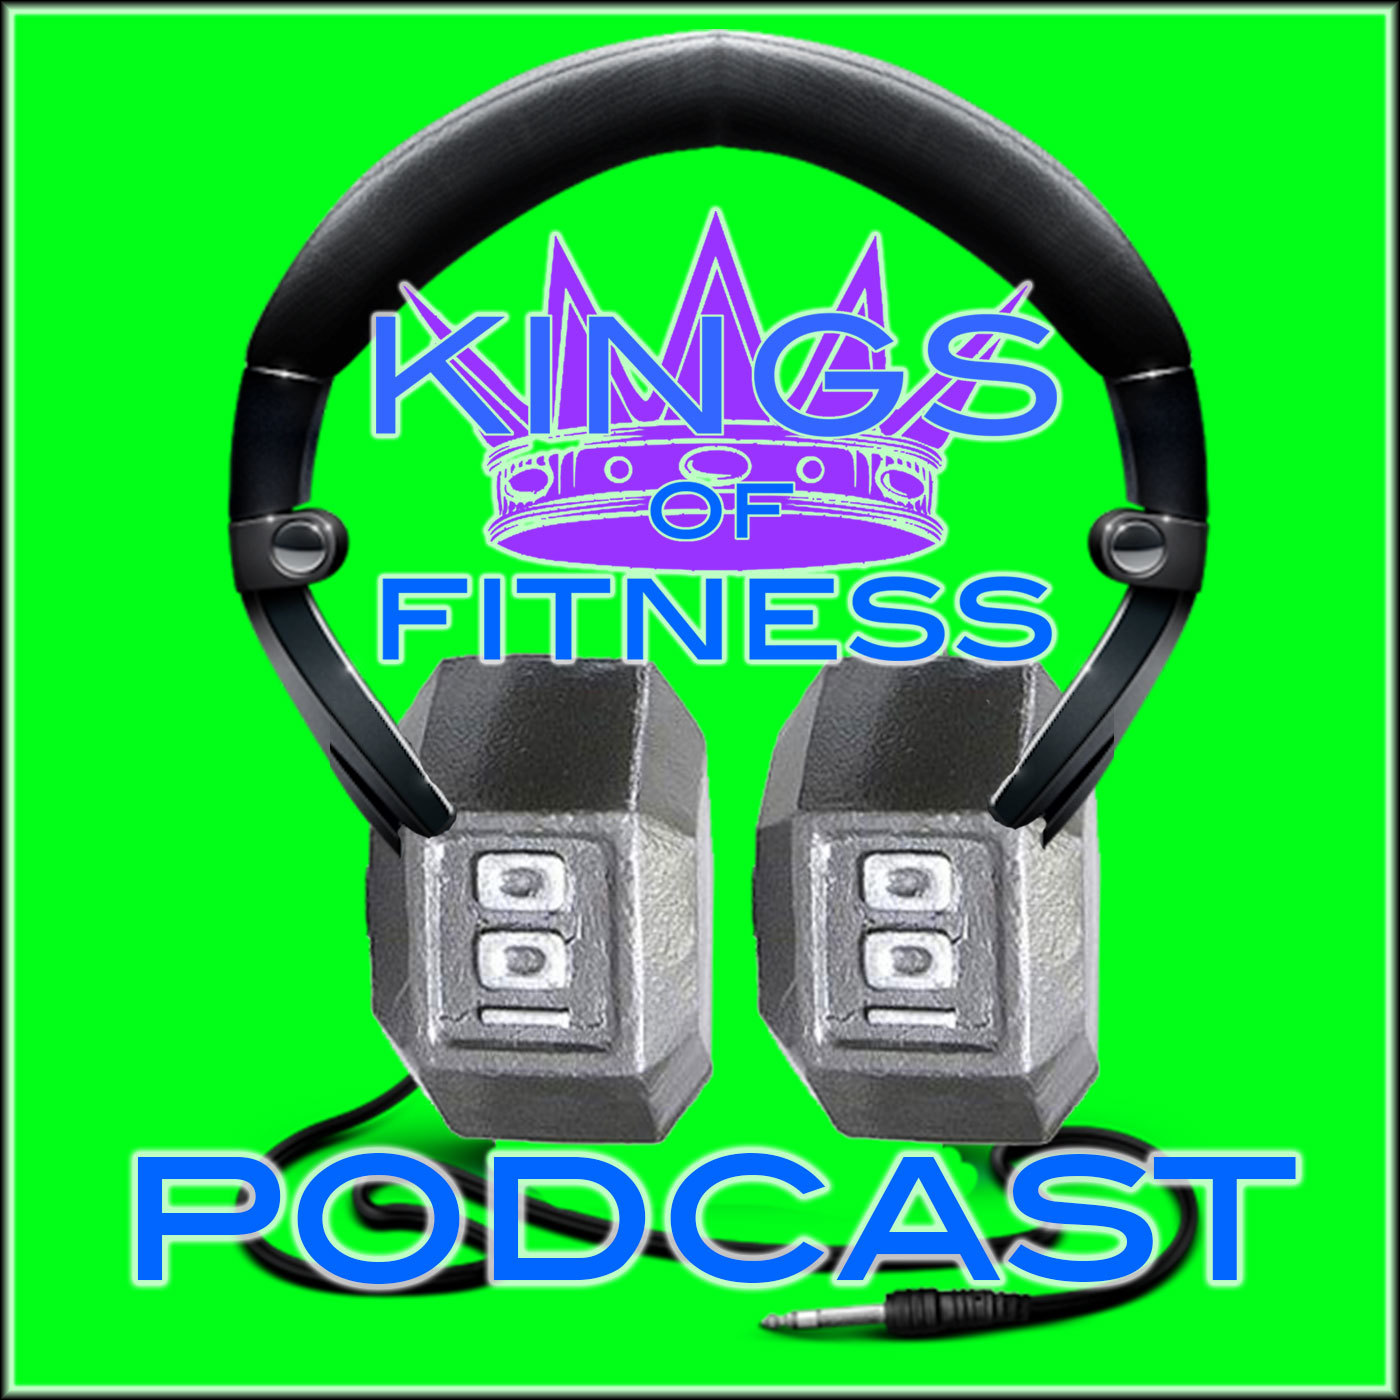 KOF PODCAST - Kings of Fitness